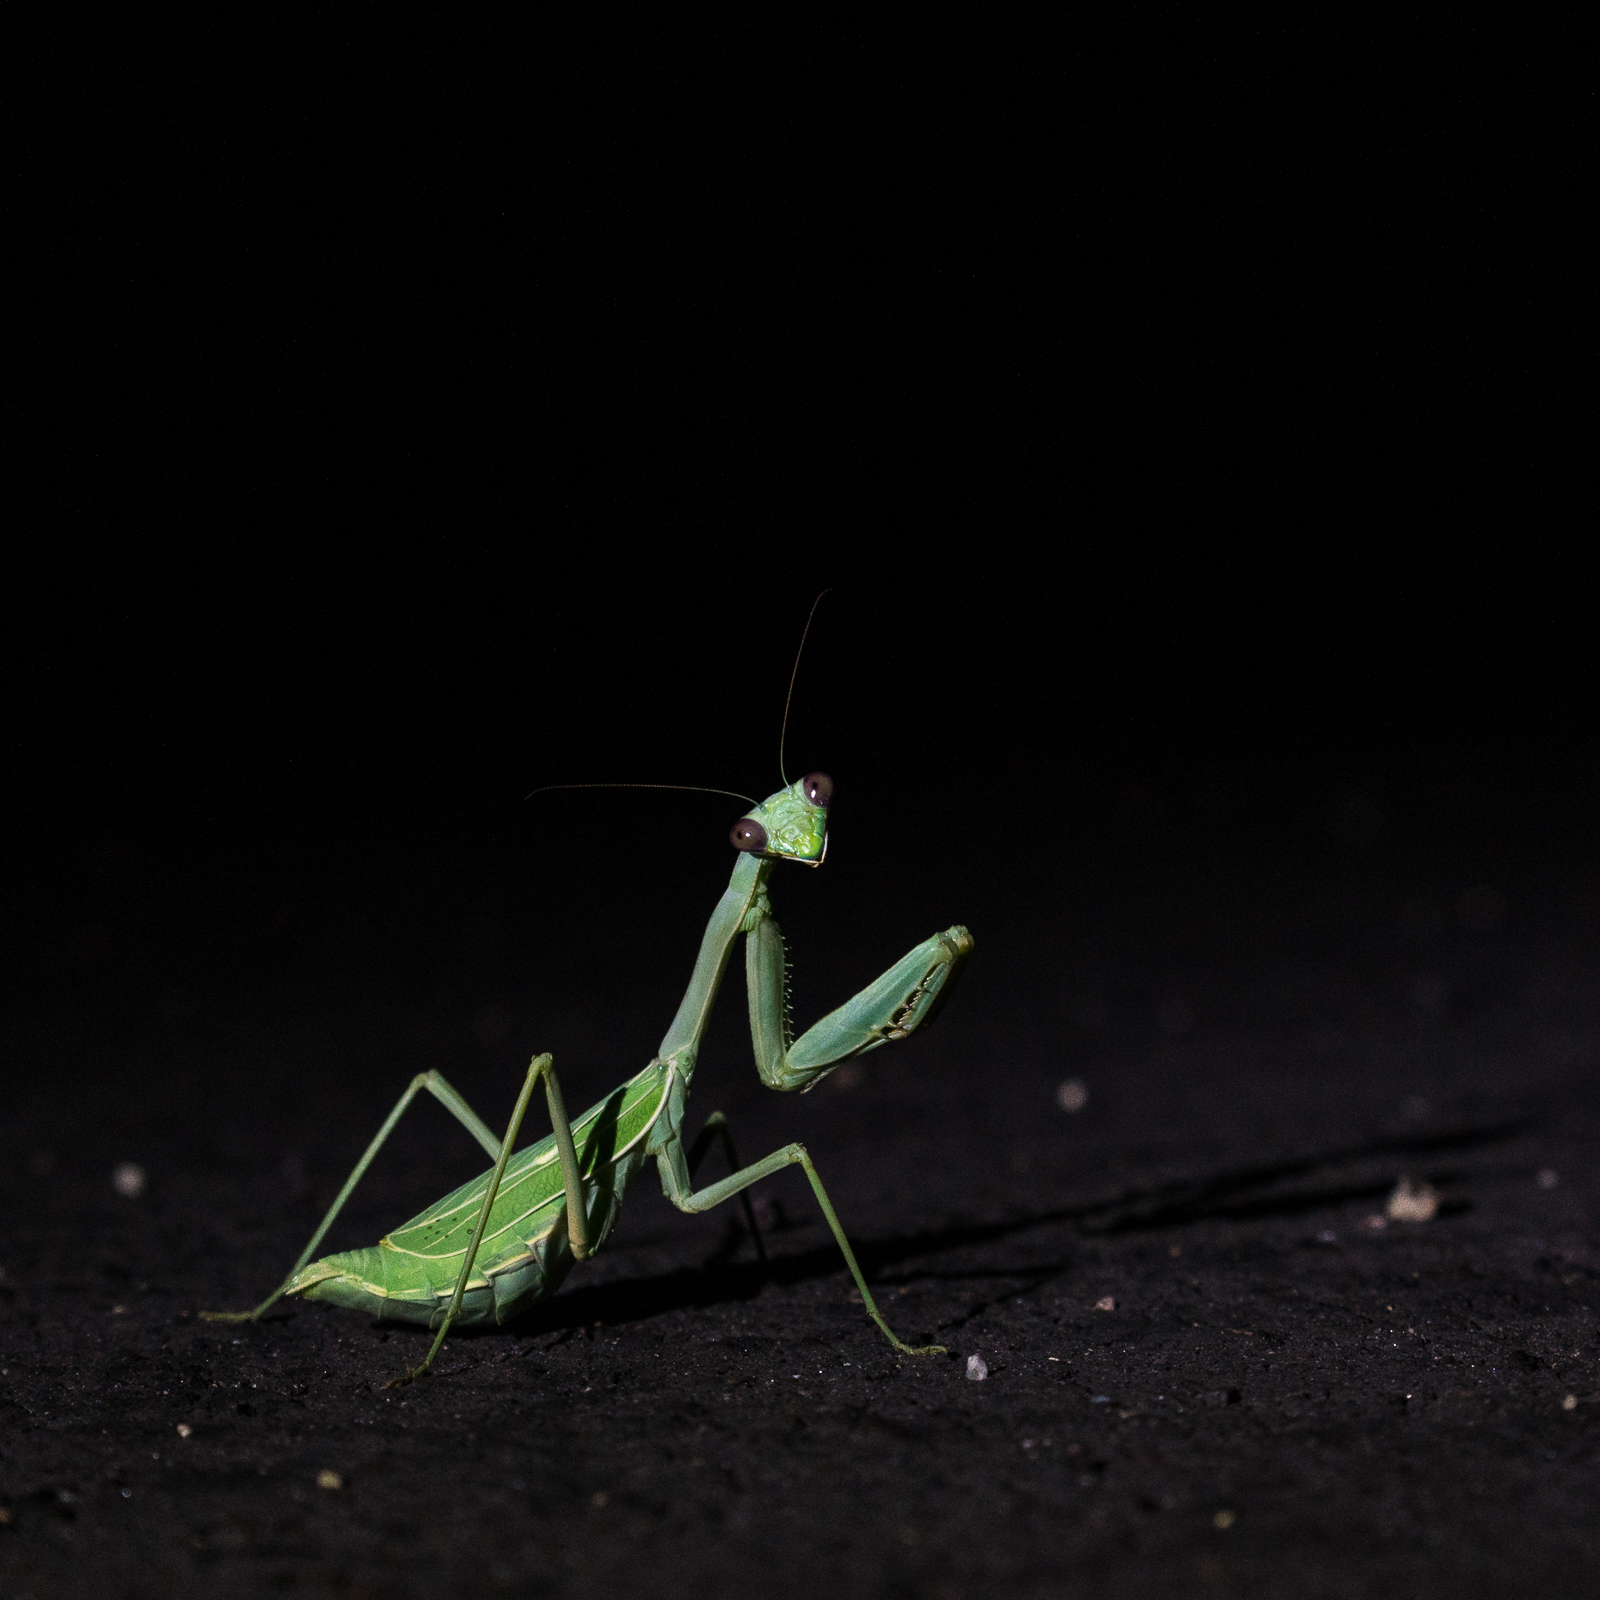 Praying Mantis. August 2016.